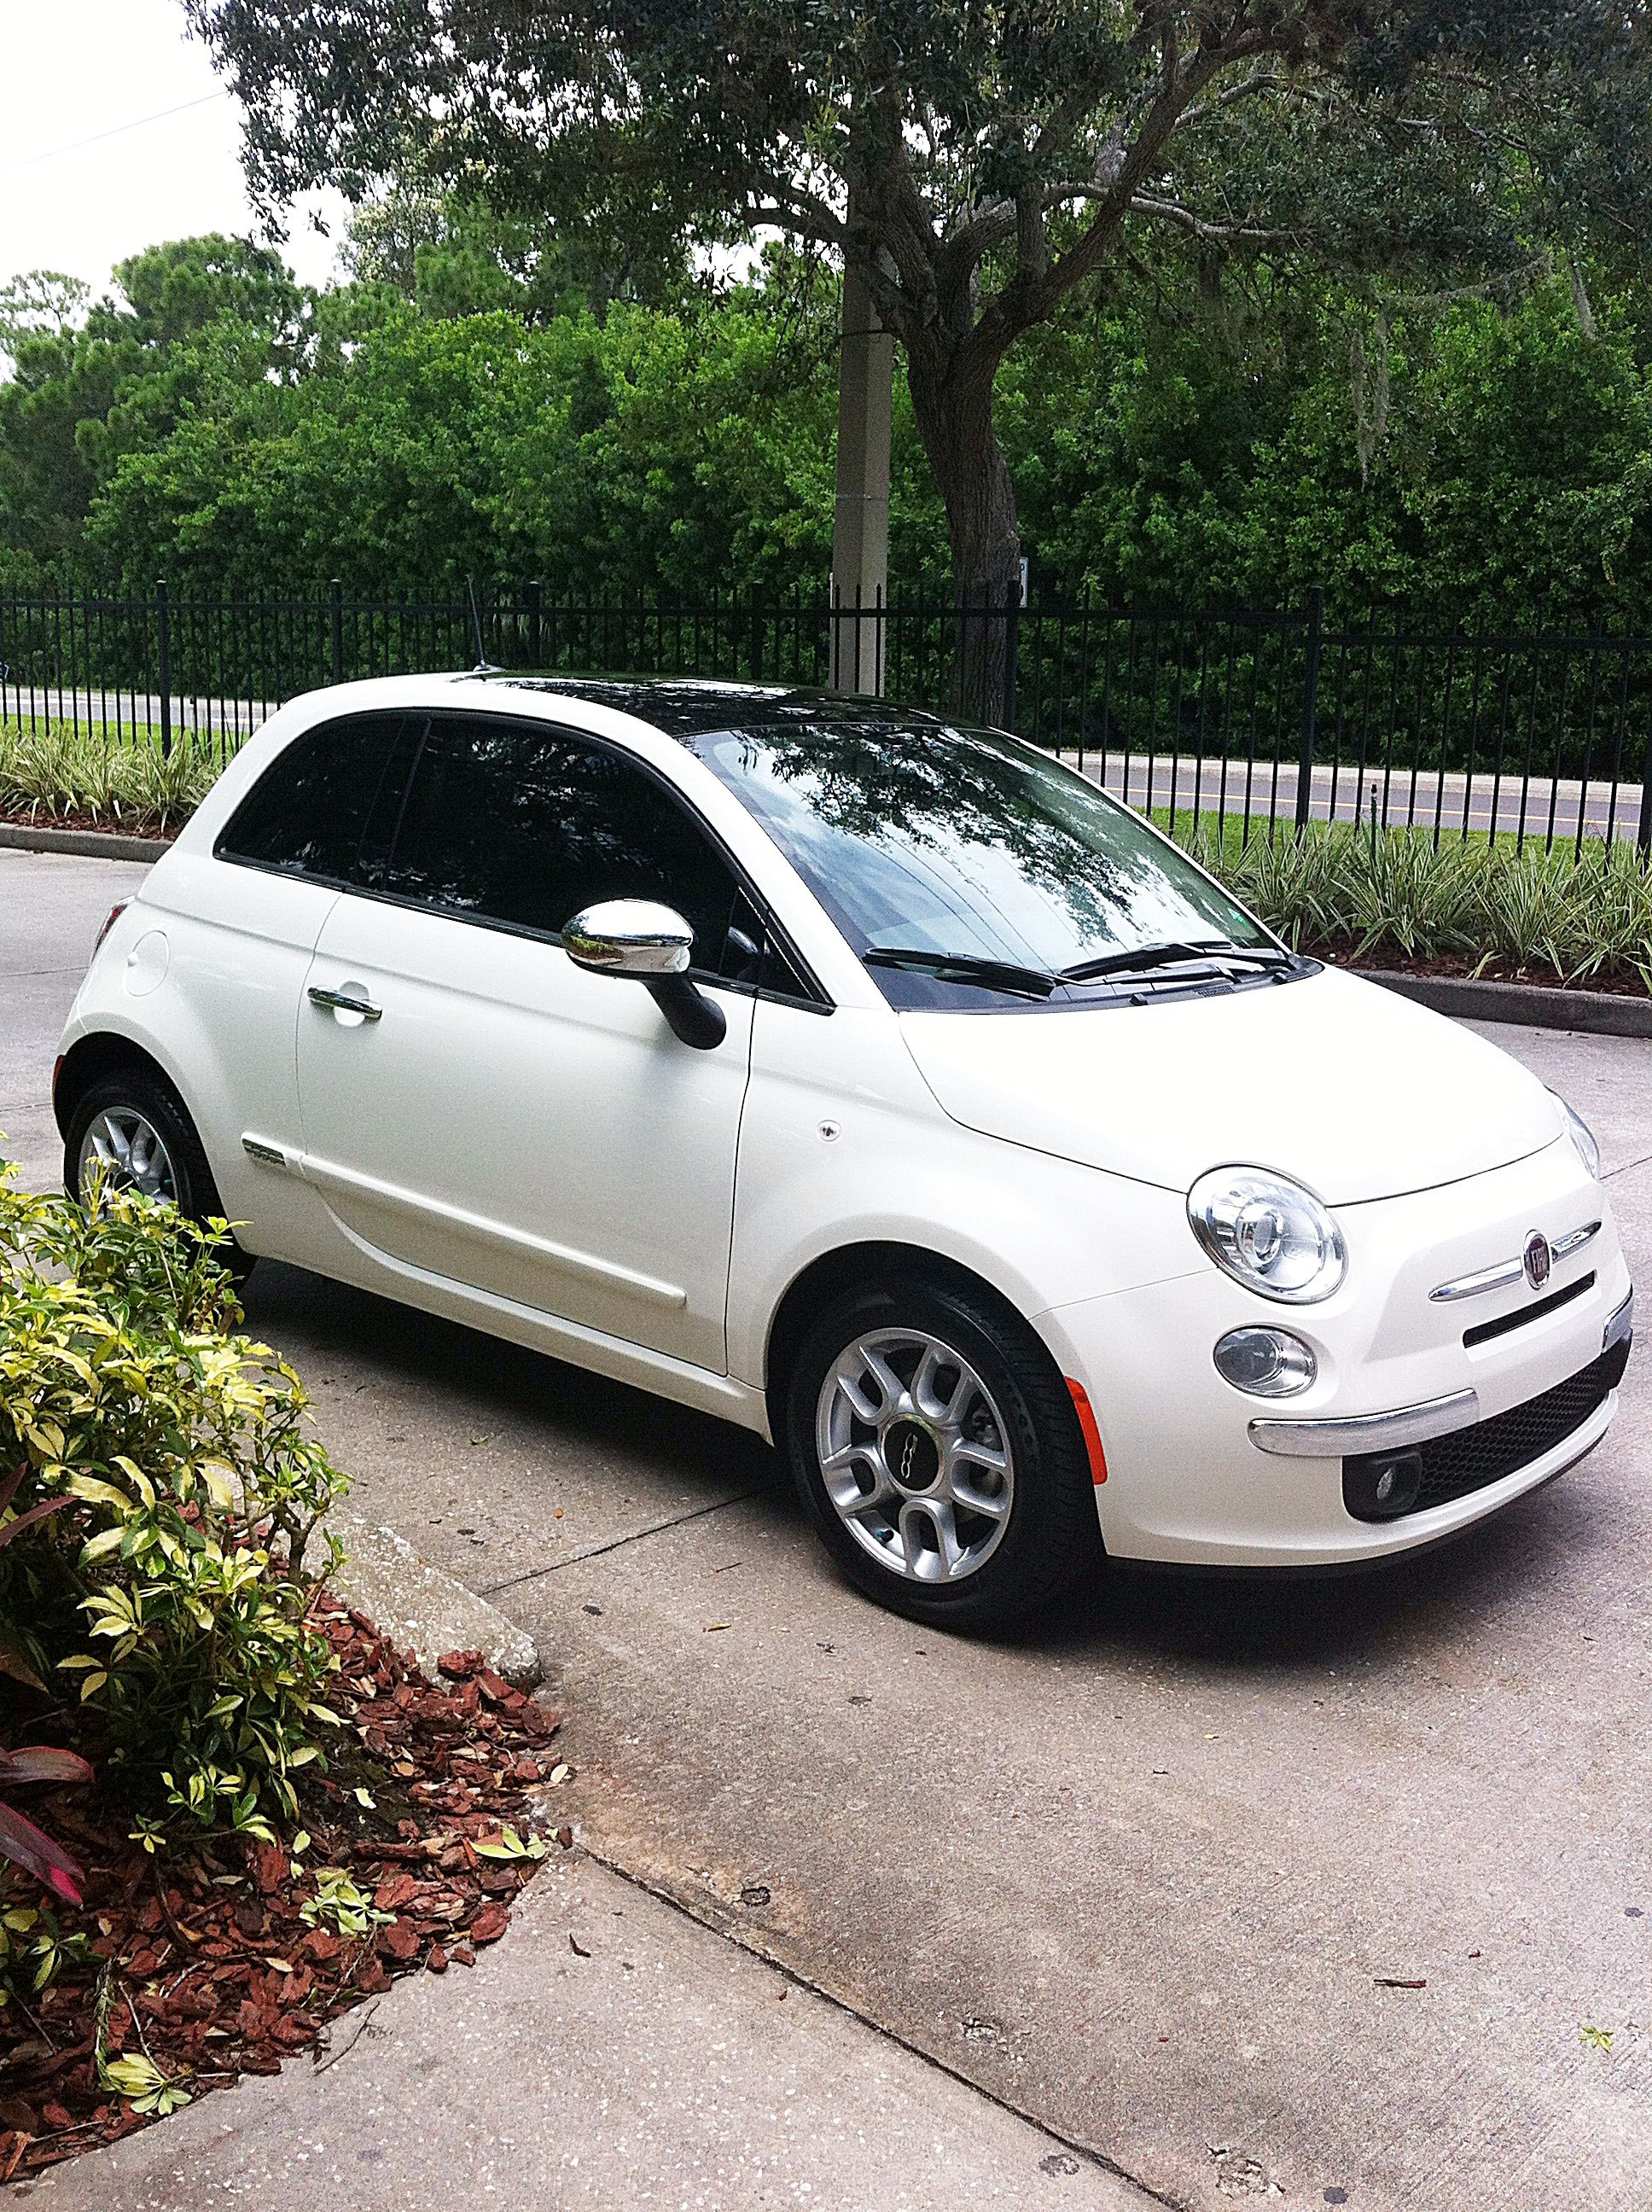 the 25 best fiat 500 white ideas on pinterest fiat 500 great kids car presents and merry christmas tumblr